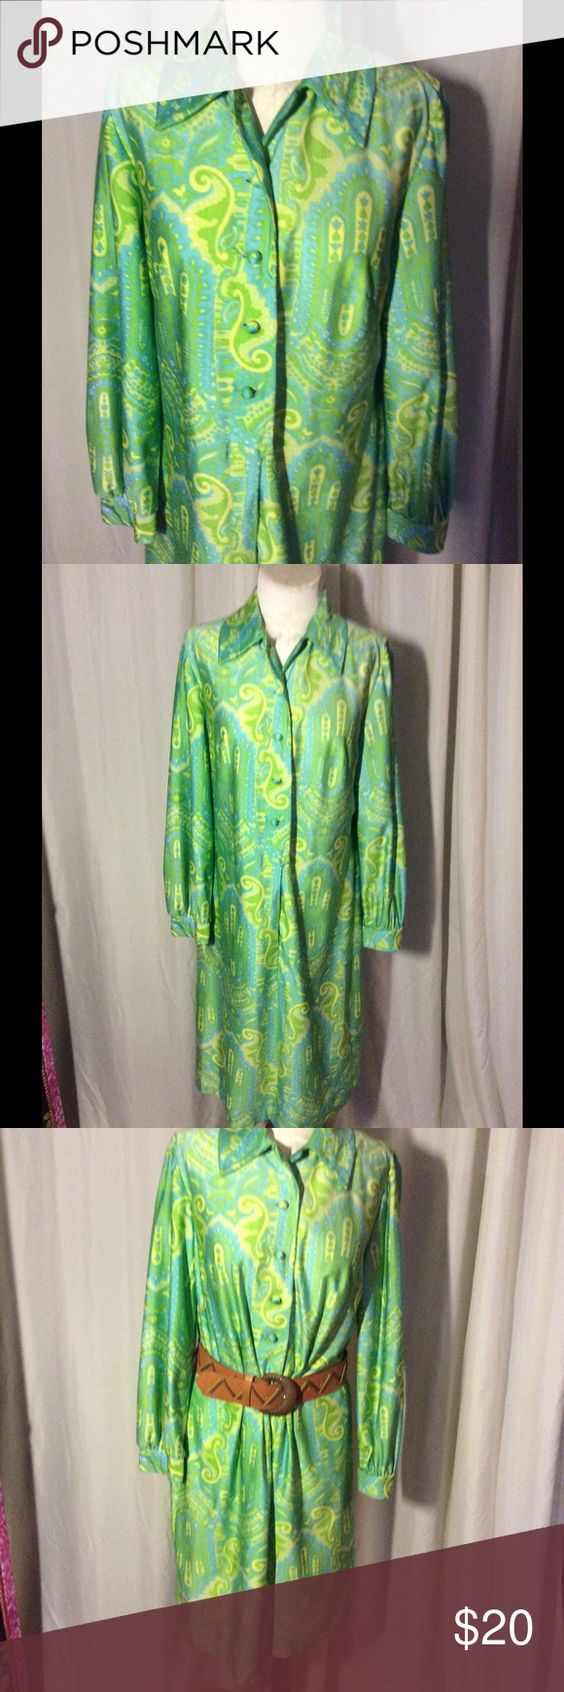 Selling this 1970s Kelly green and yellow shift dress on Poshmark! My username is: patriciamildred. #shopmycloset #poshmark #fashion #shopping #style #forsale #Vintage #Dresses & Skirts